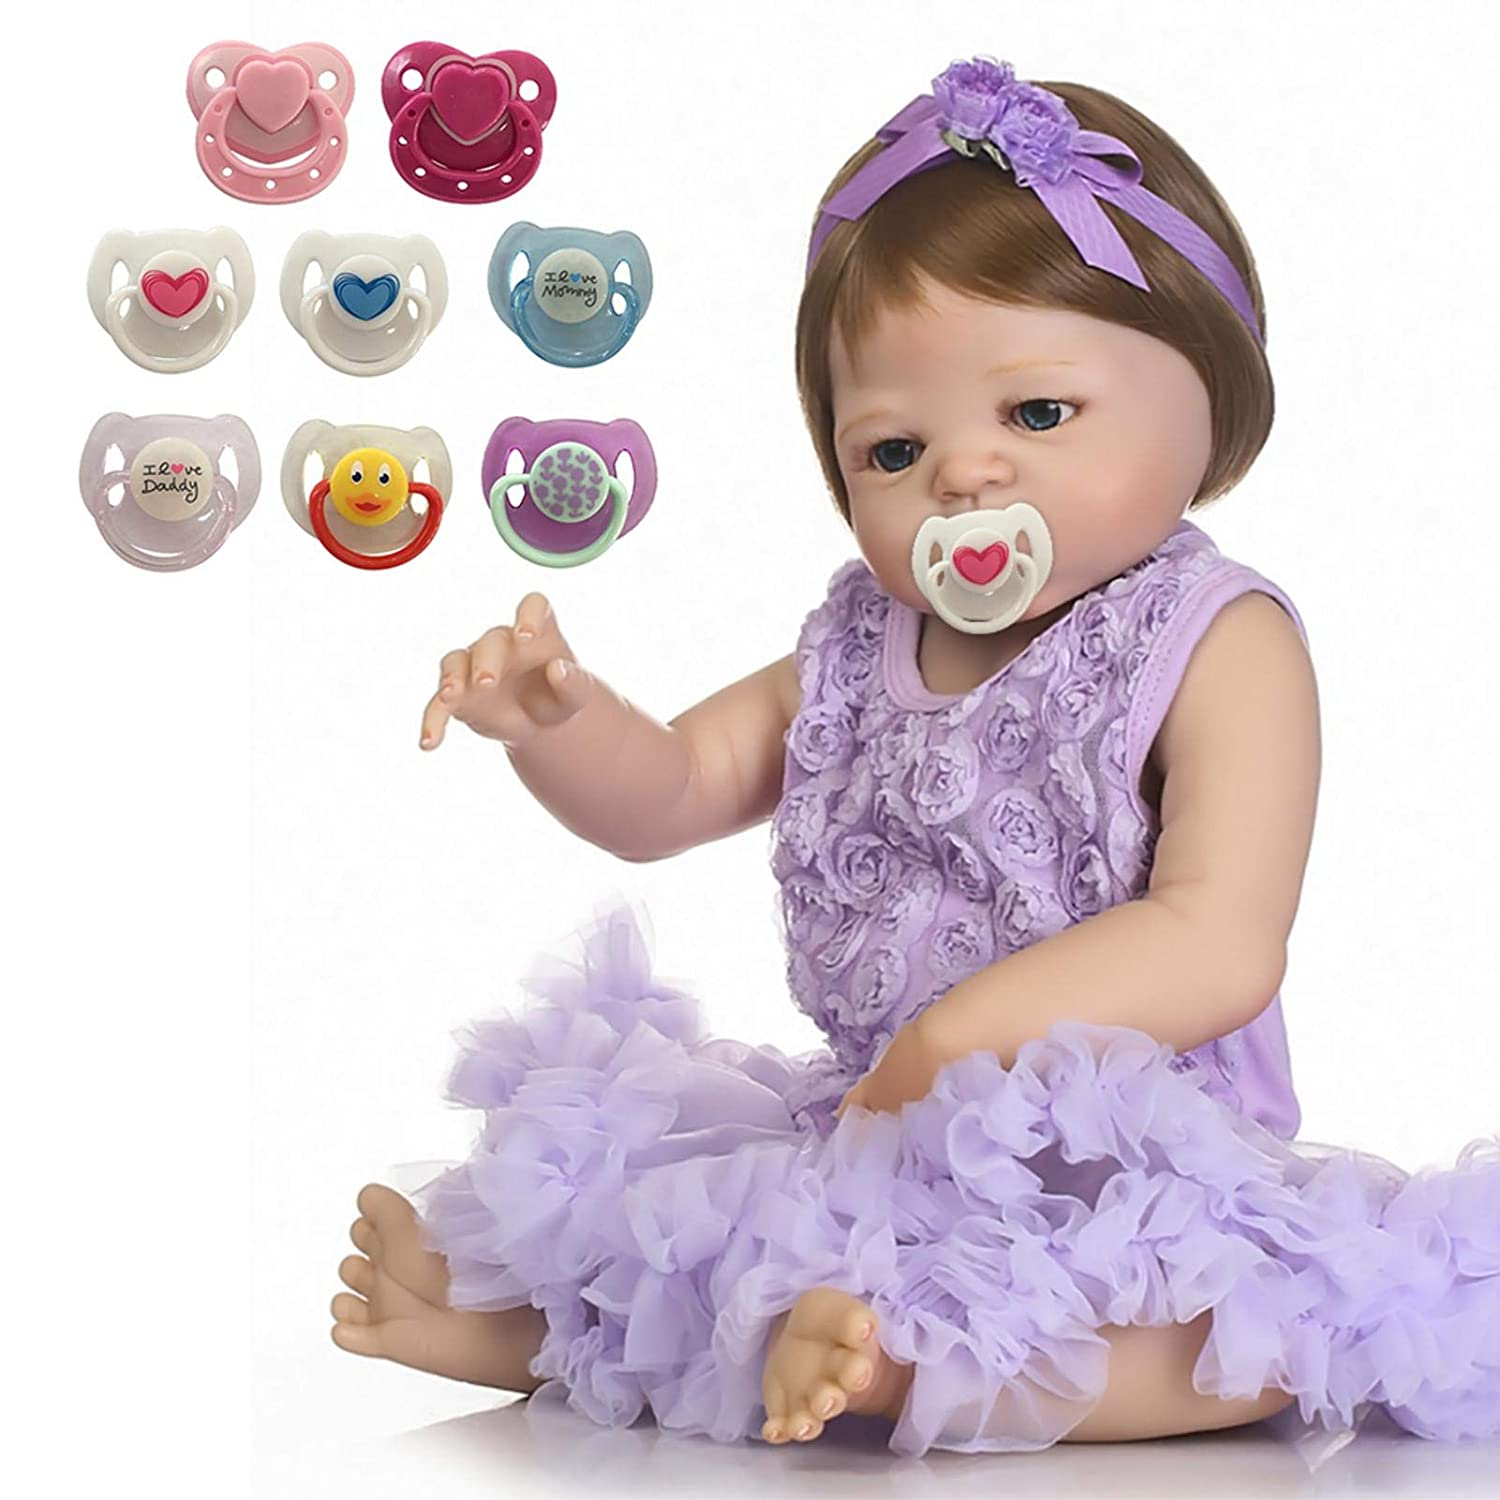 6PCS Magnetic Pacifier for Reborn Baby Doll Reborn Doll Kits Newborn Accessories